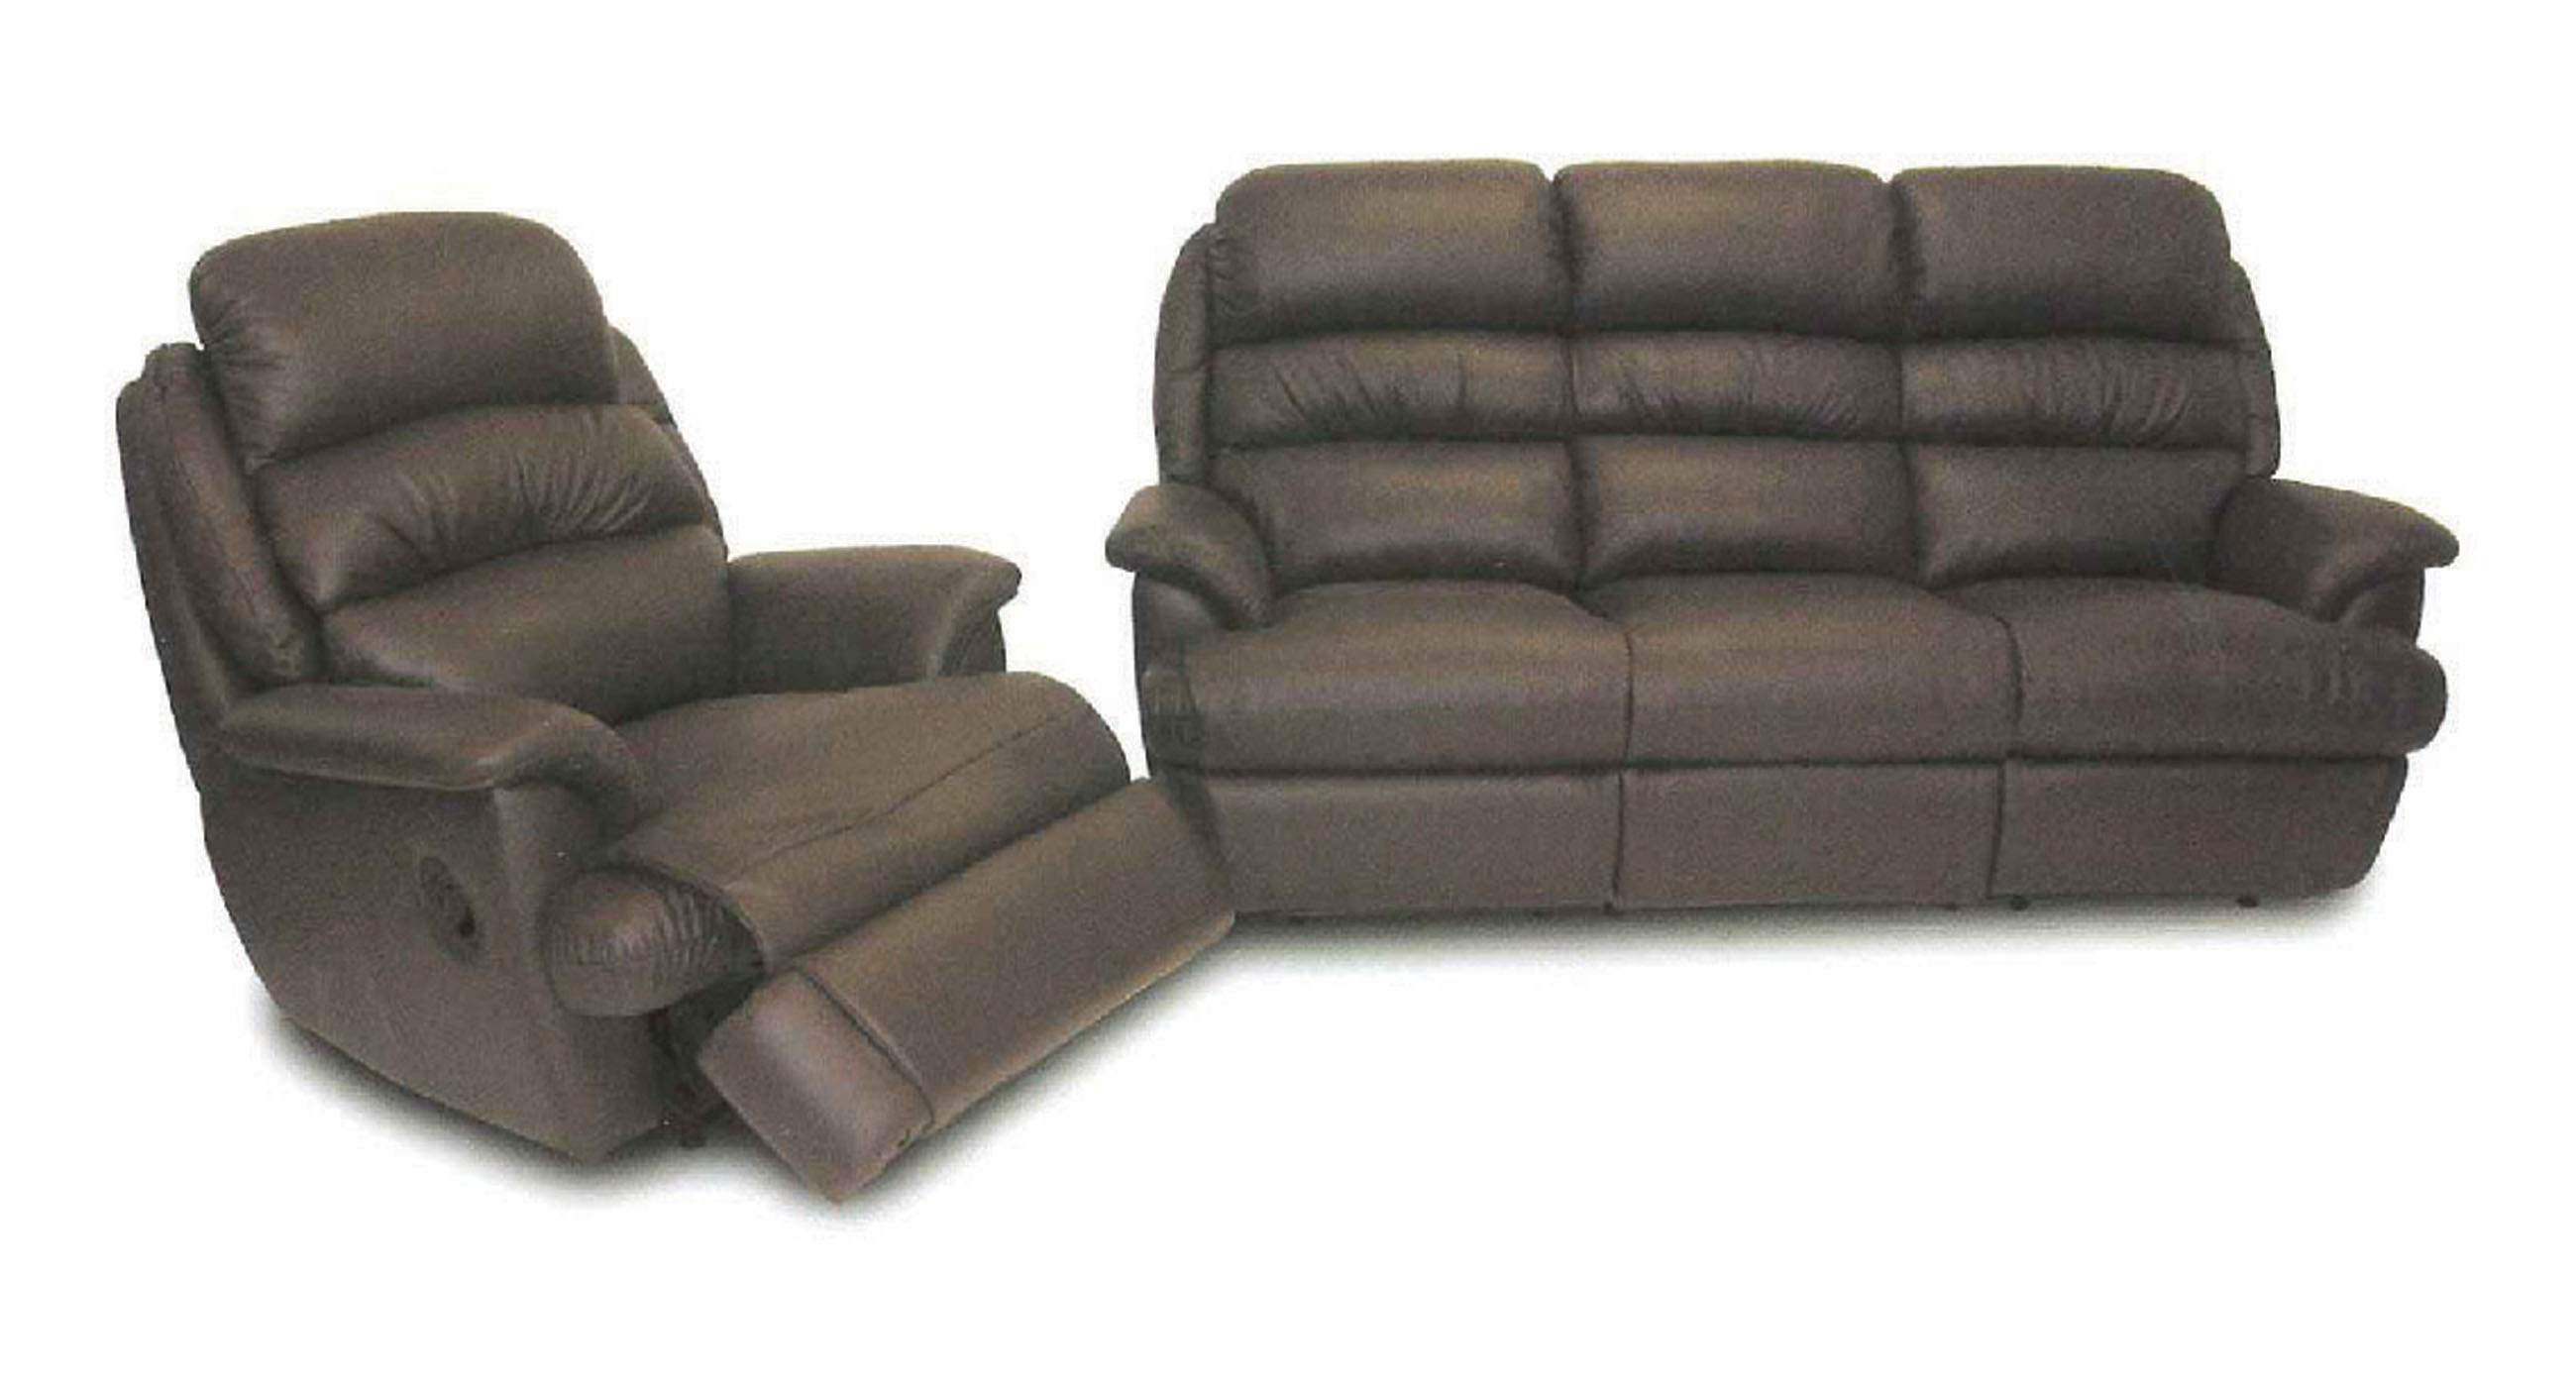 Clayton Reclining Sofa and Chairs